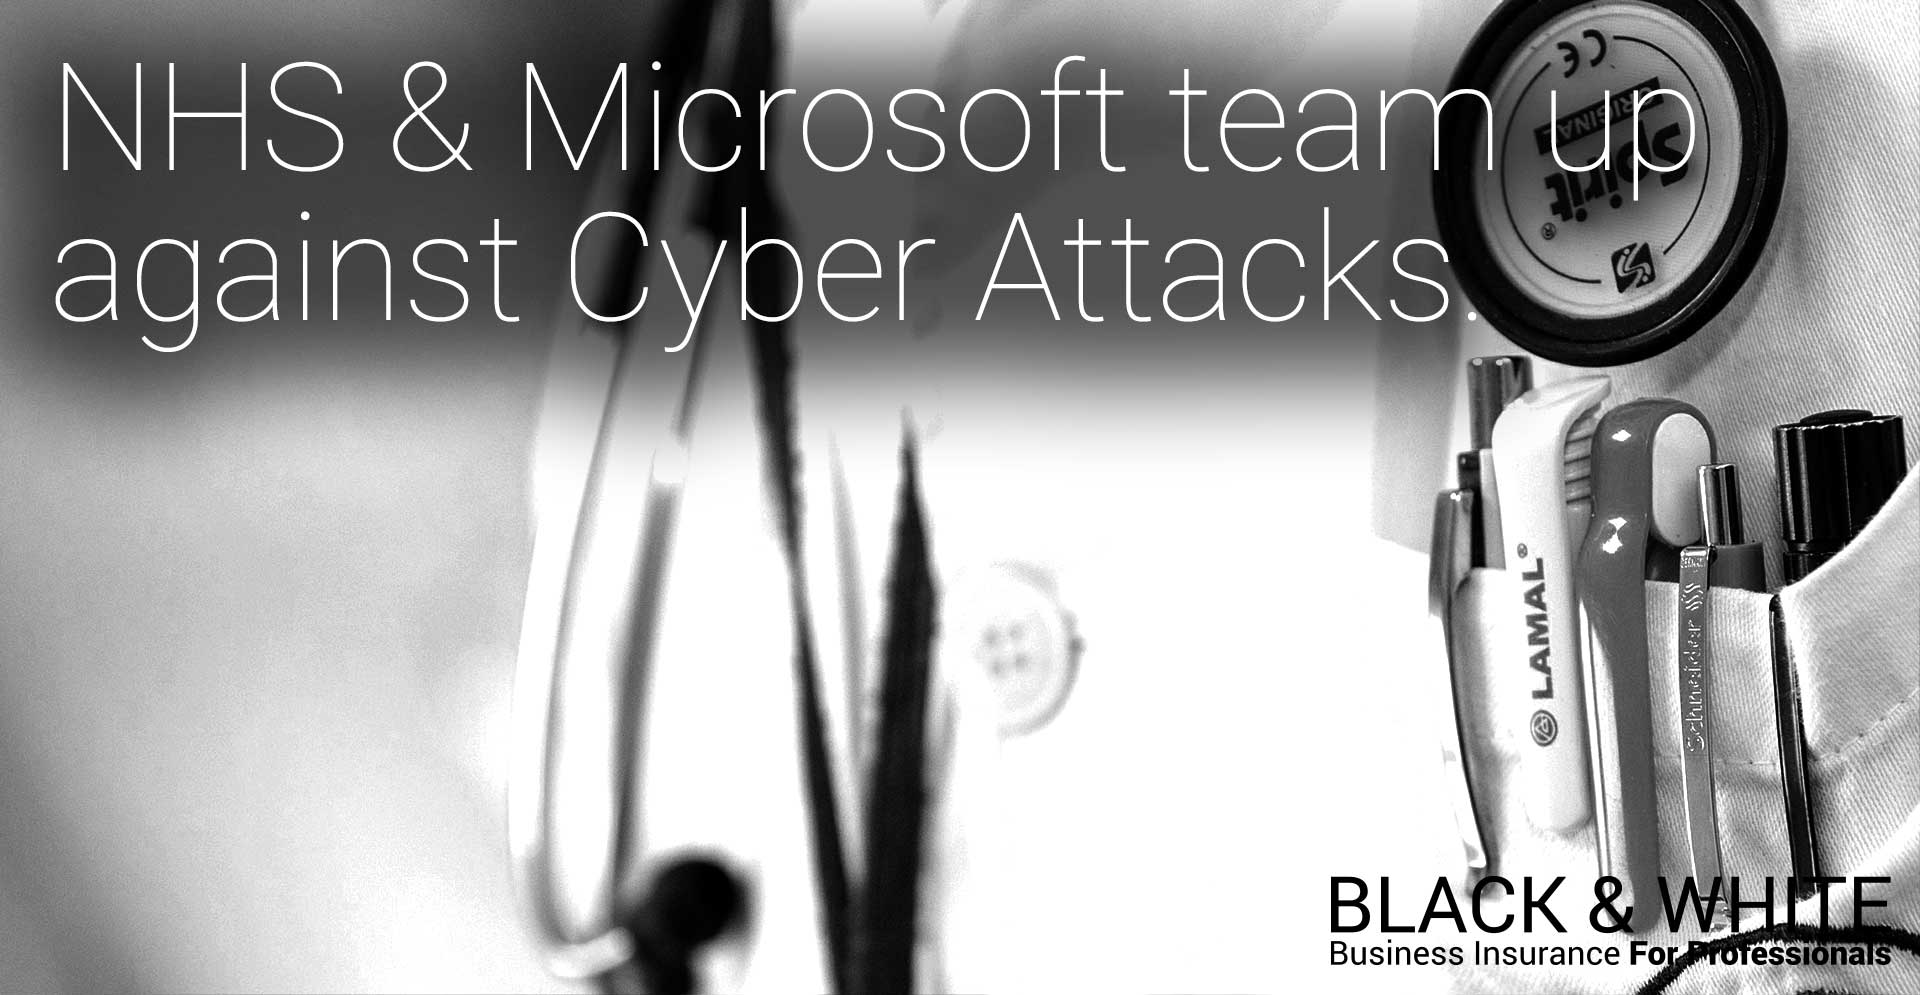 Cyber attack NHS Microsoft team up